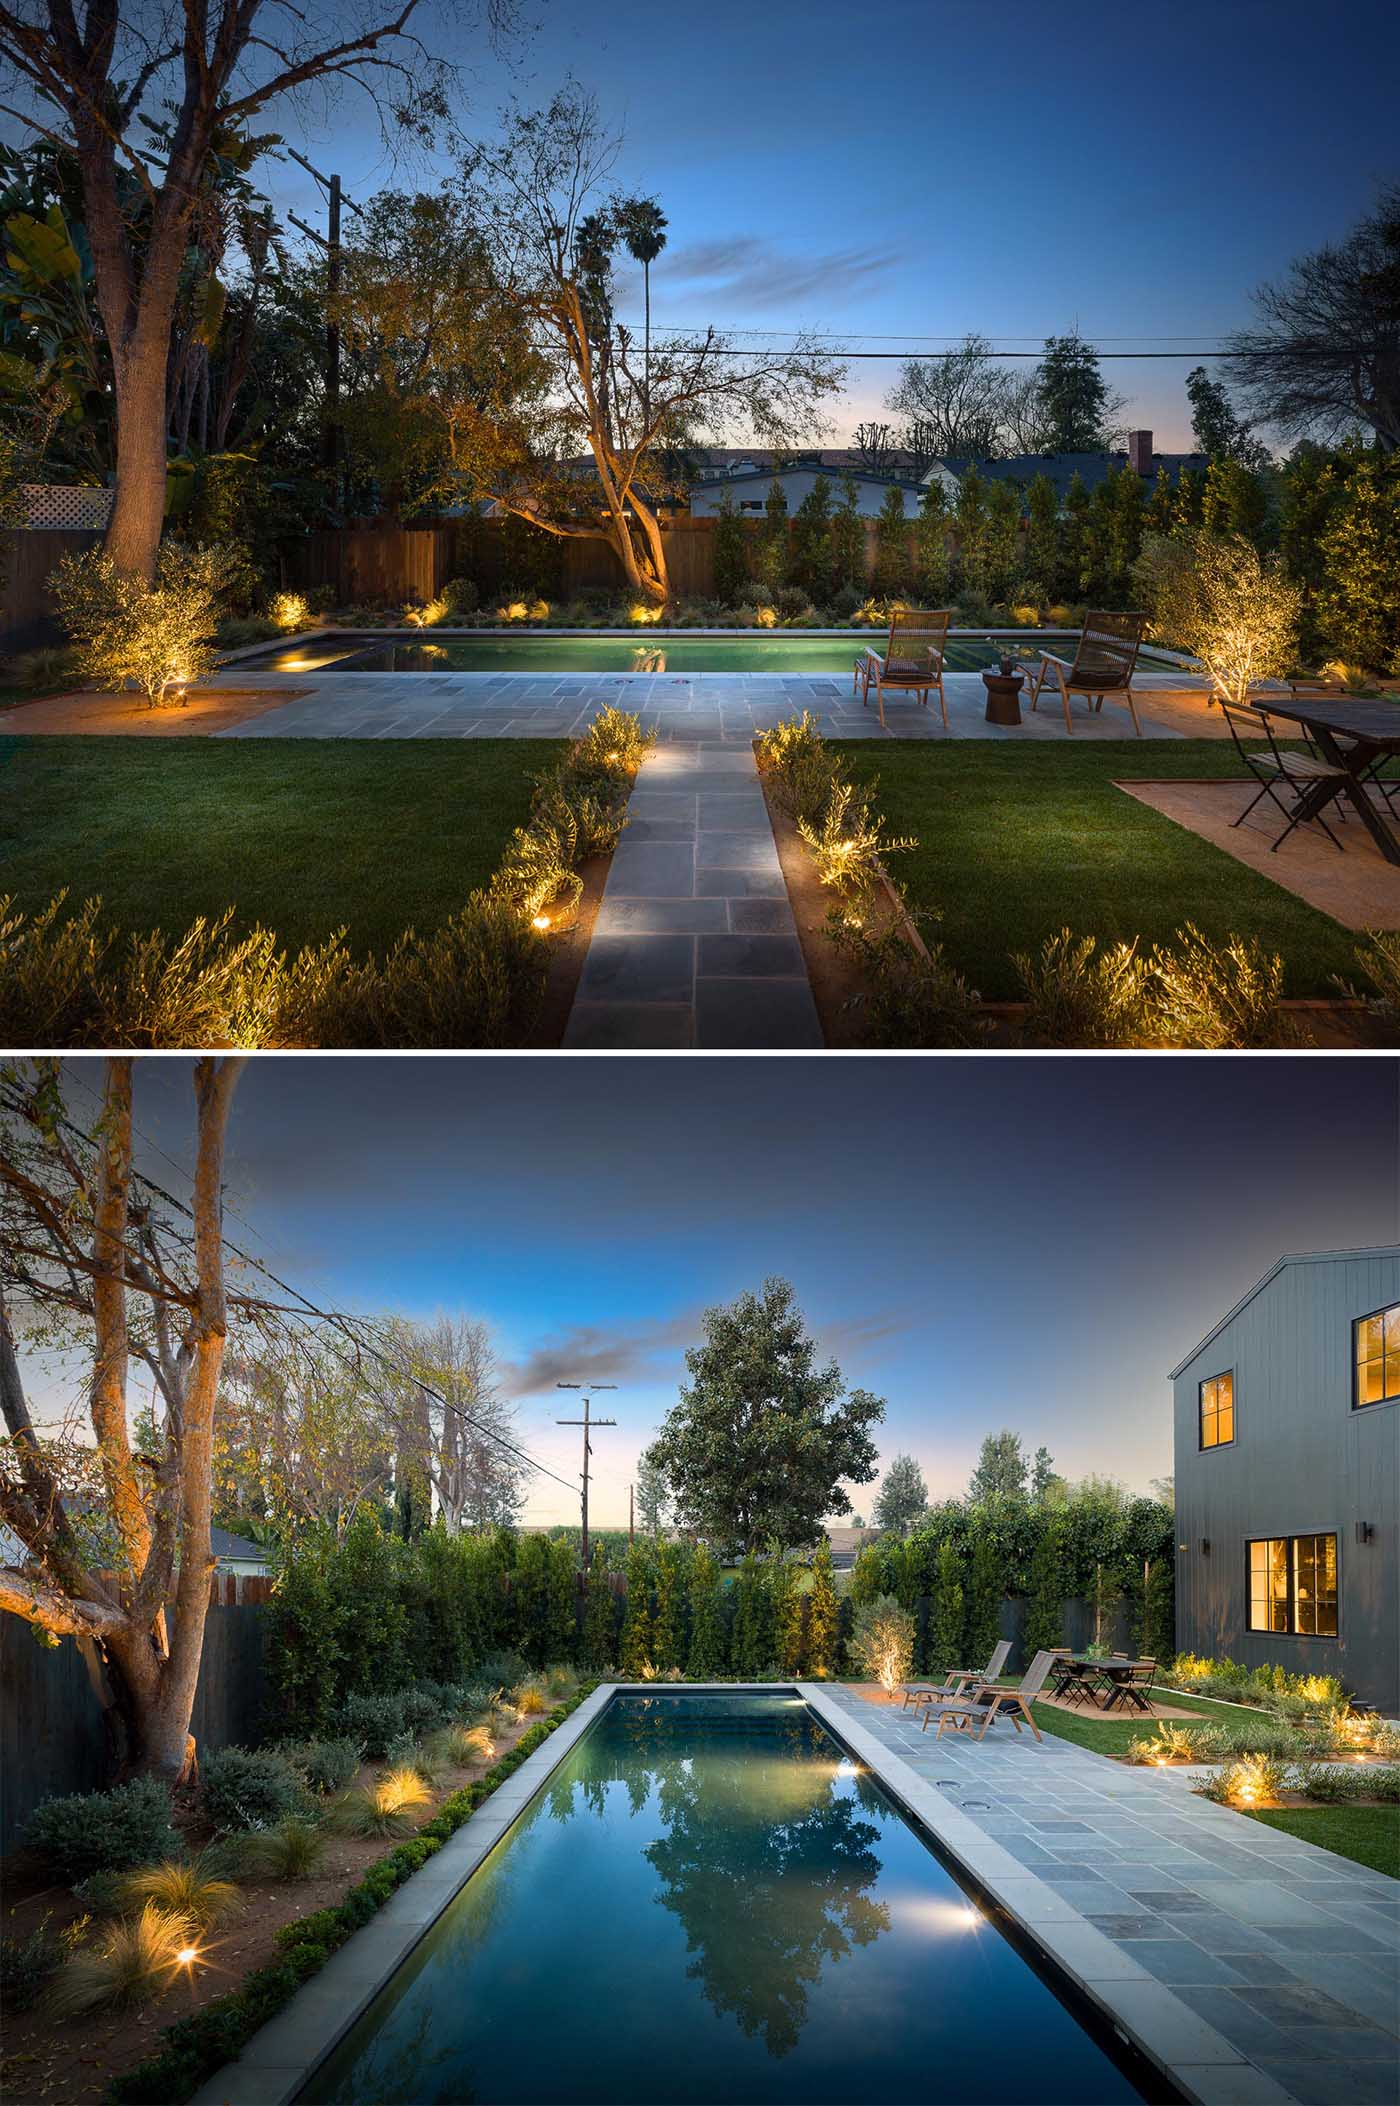 A landscaped backyard with a 50 foot swimming pool.